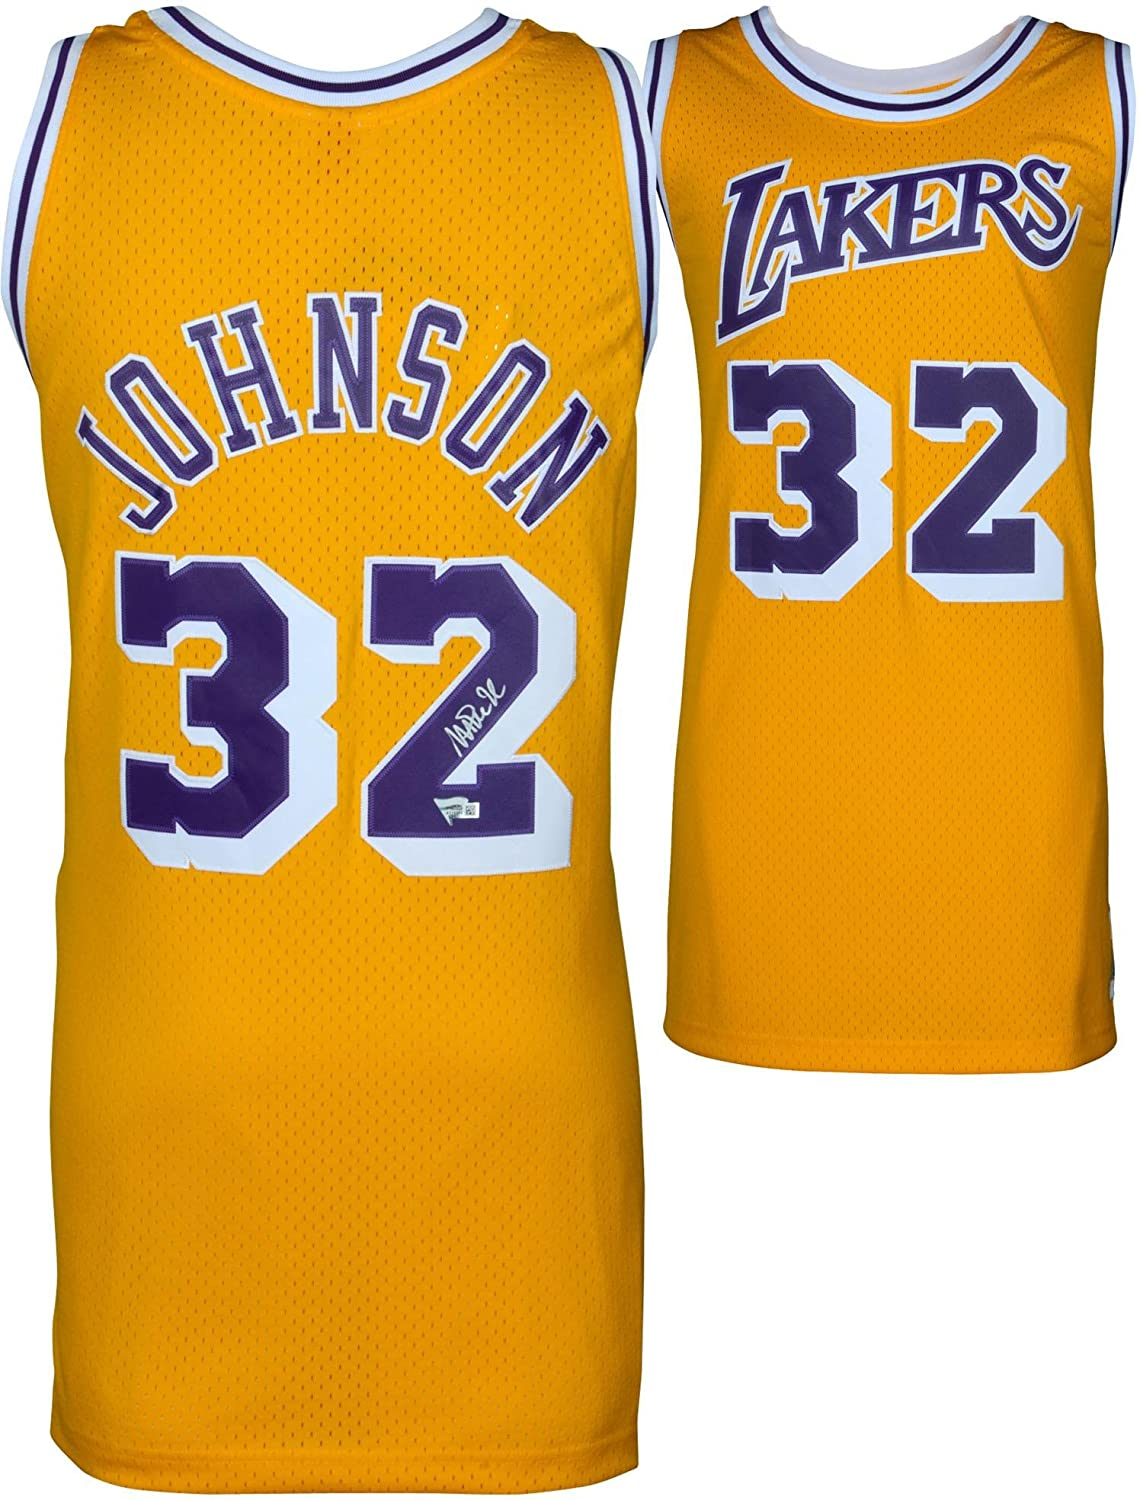 Magic Johnson Los Angeles Lakers Autographed Gold Mitchell & Ness Hardwood Classics Swingman Jersey - Fanatics Authentic Certified